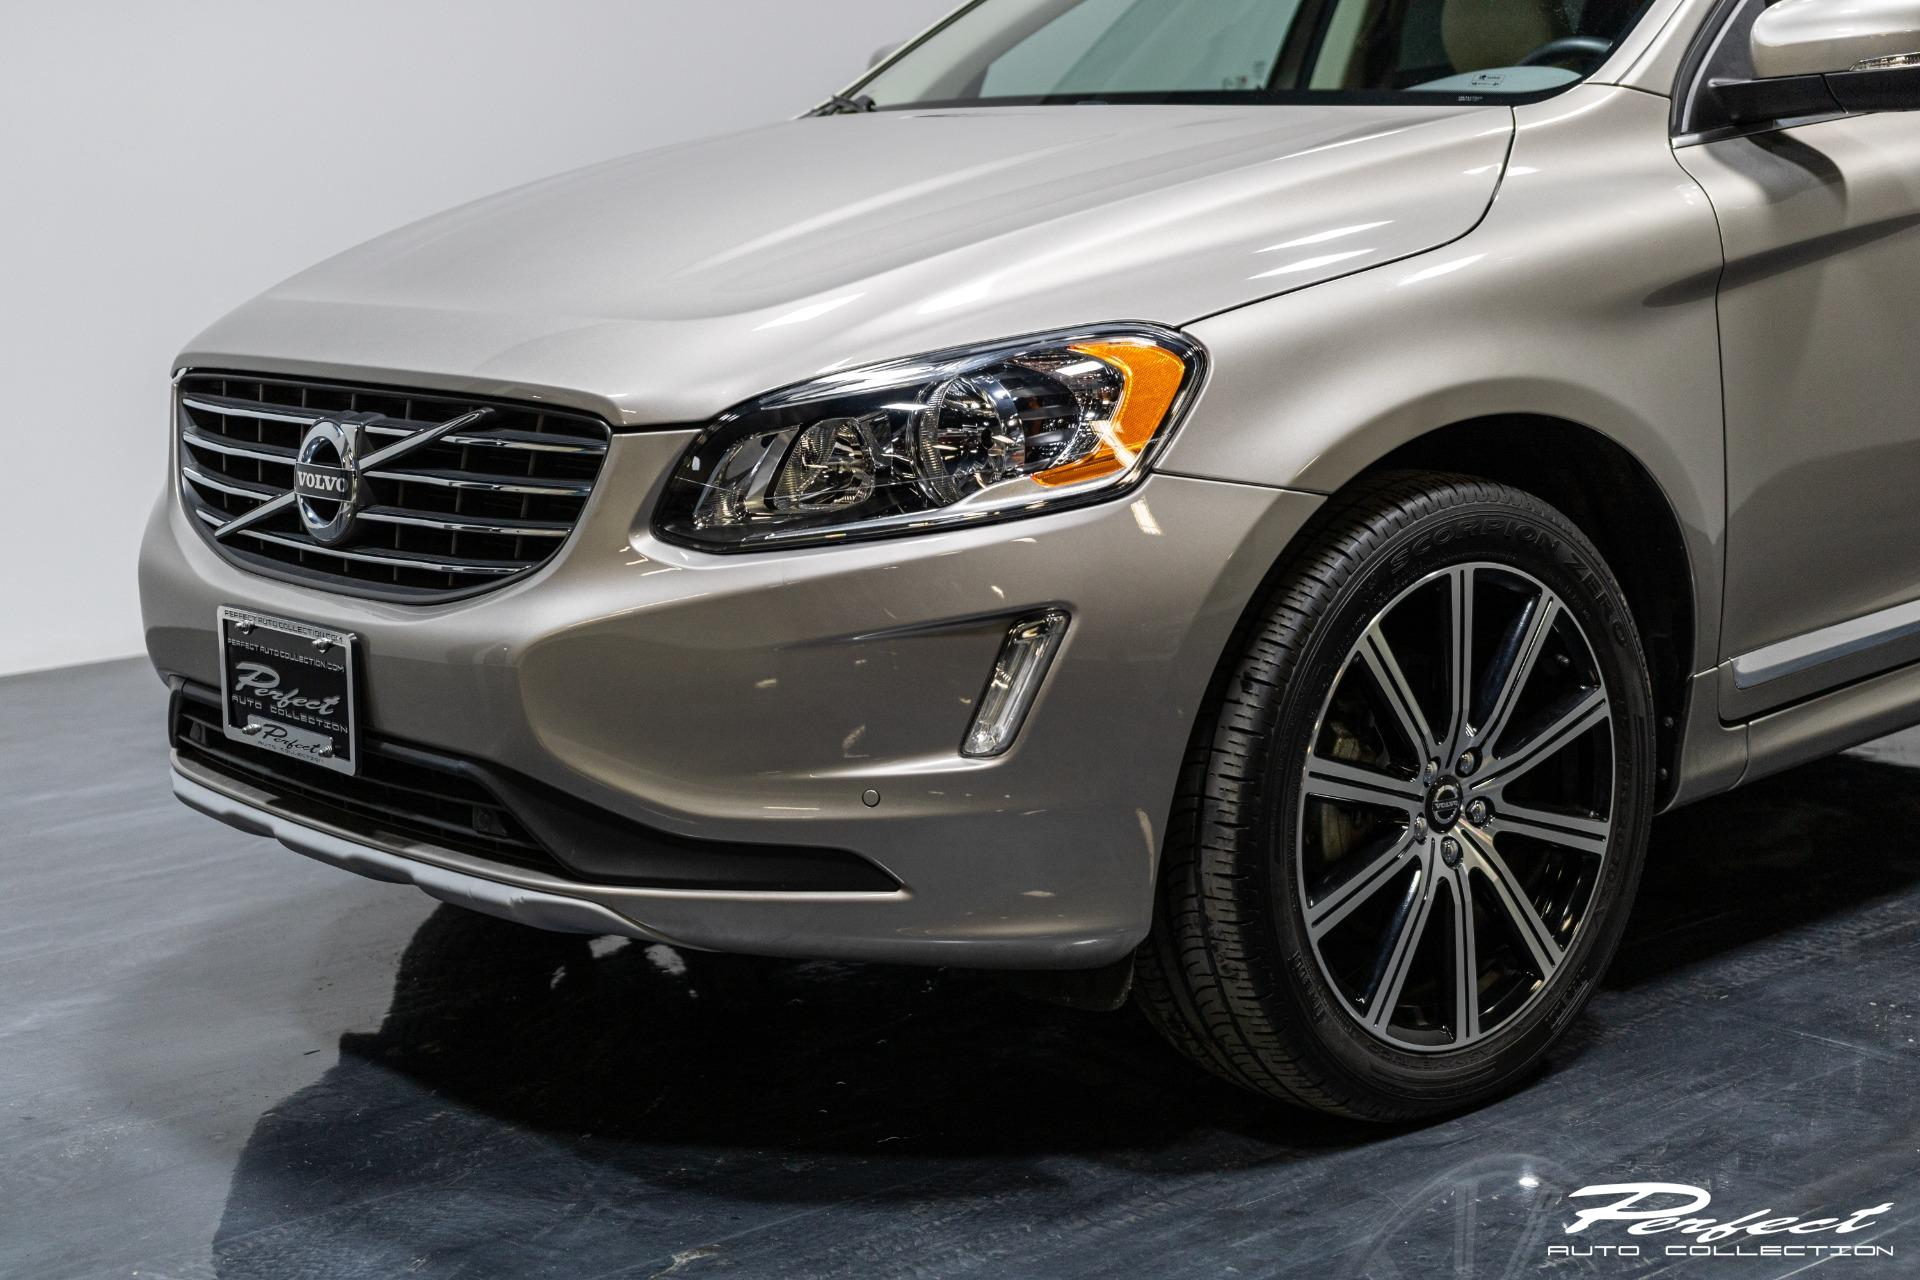 Used 2016 Volvo XC60 T6 Drive-E for sale Sold at Perfect Auto Collection in Akron OH 44310 3